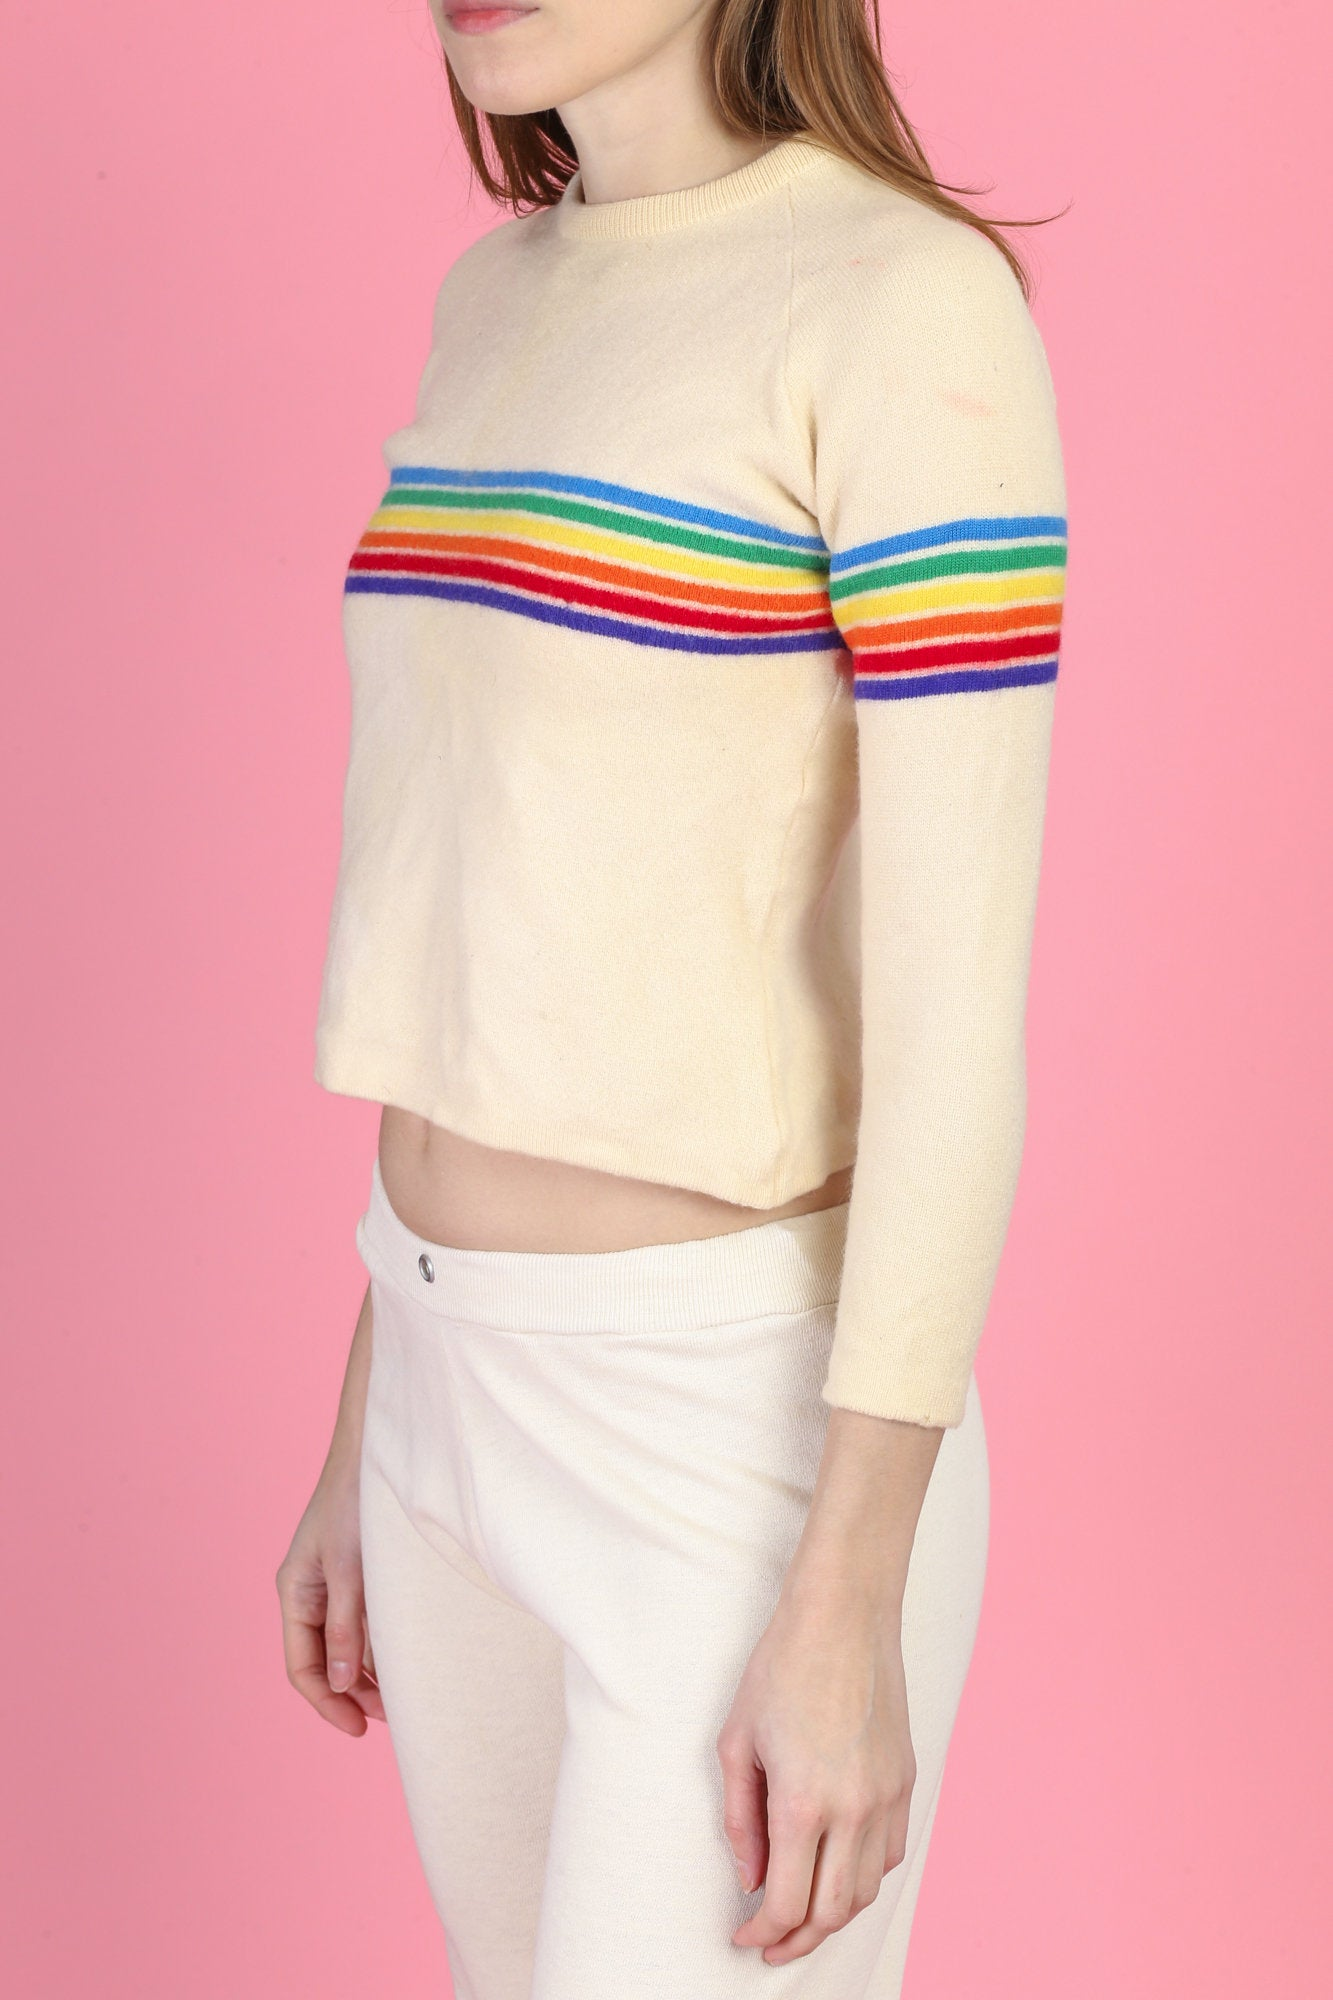 70s Meister Rainbow Stripe Sweater - XXS